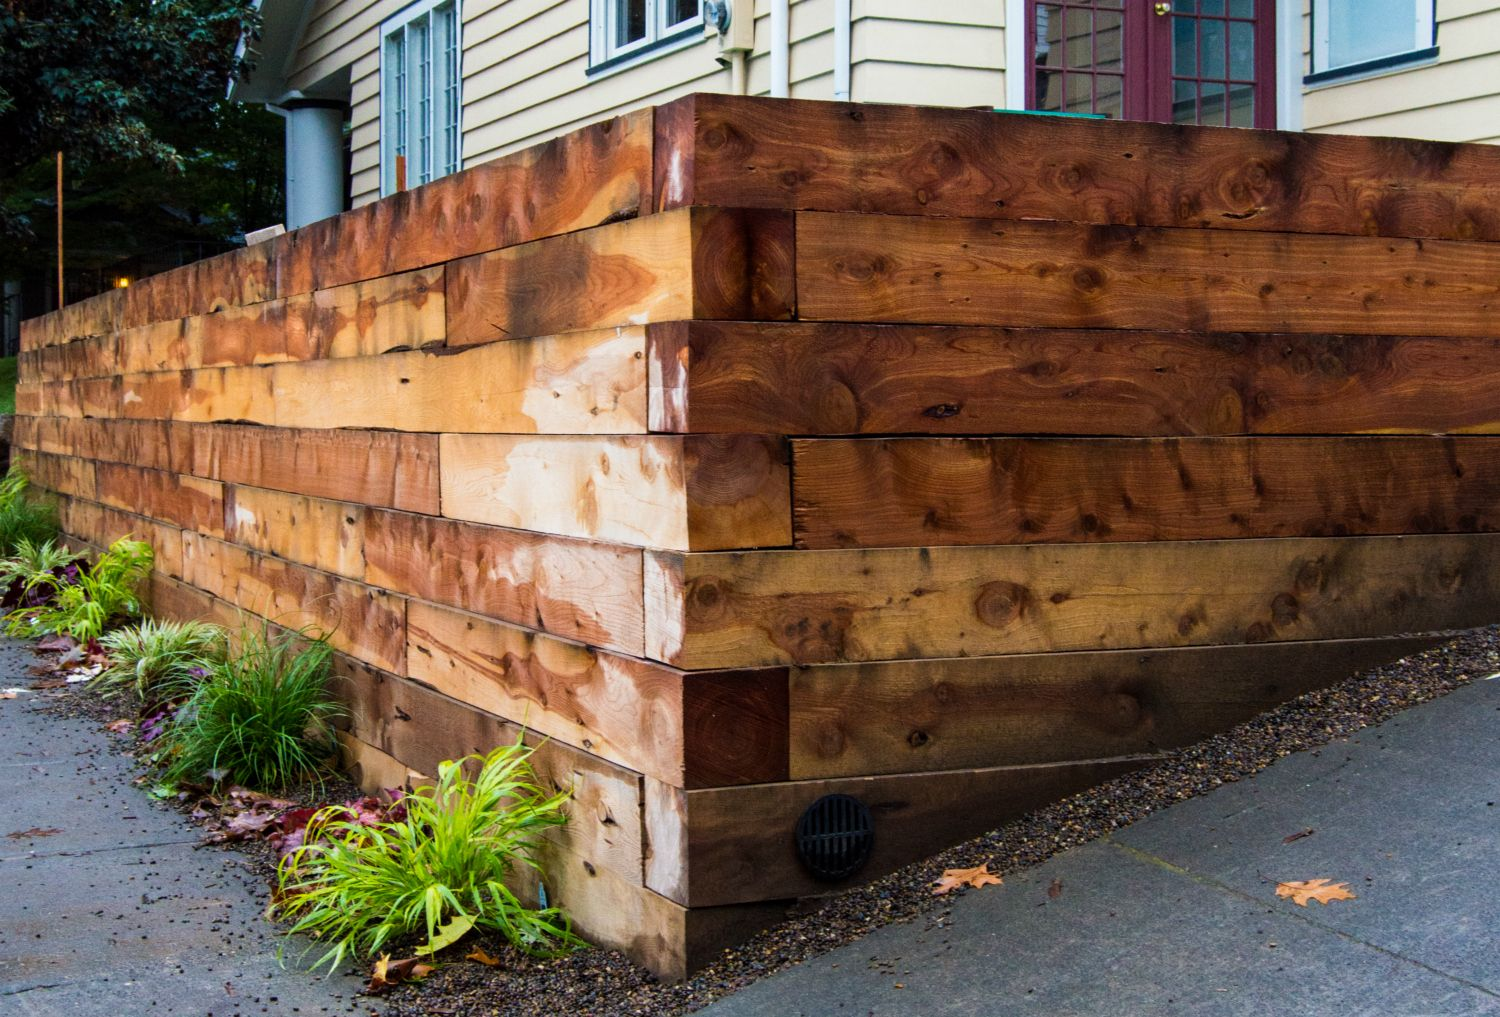 Hefty 6x6 Juniper Landscaping Timbers Were Used For This Beautiful Retaining Wall C Landscaping Retaining Walls Wooden Retaining Wall Concrete Retaining Walls